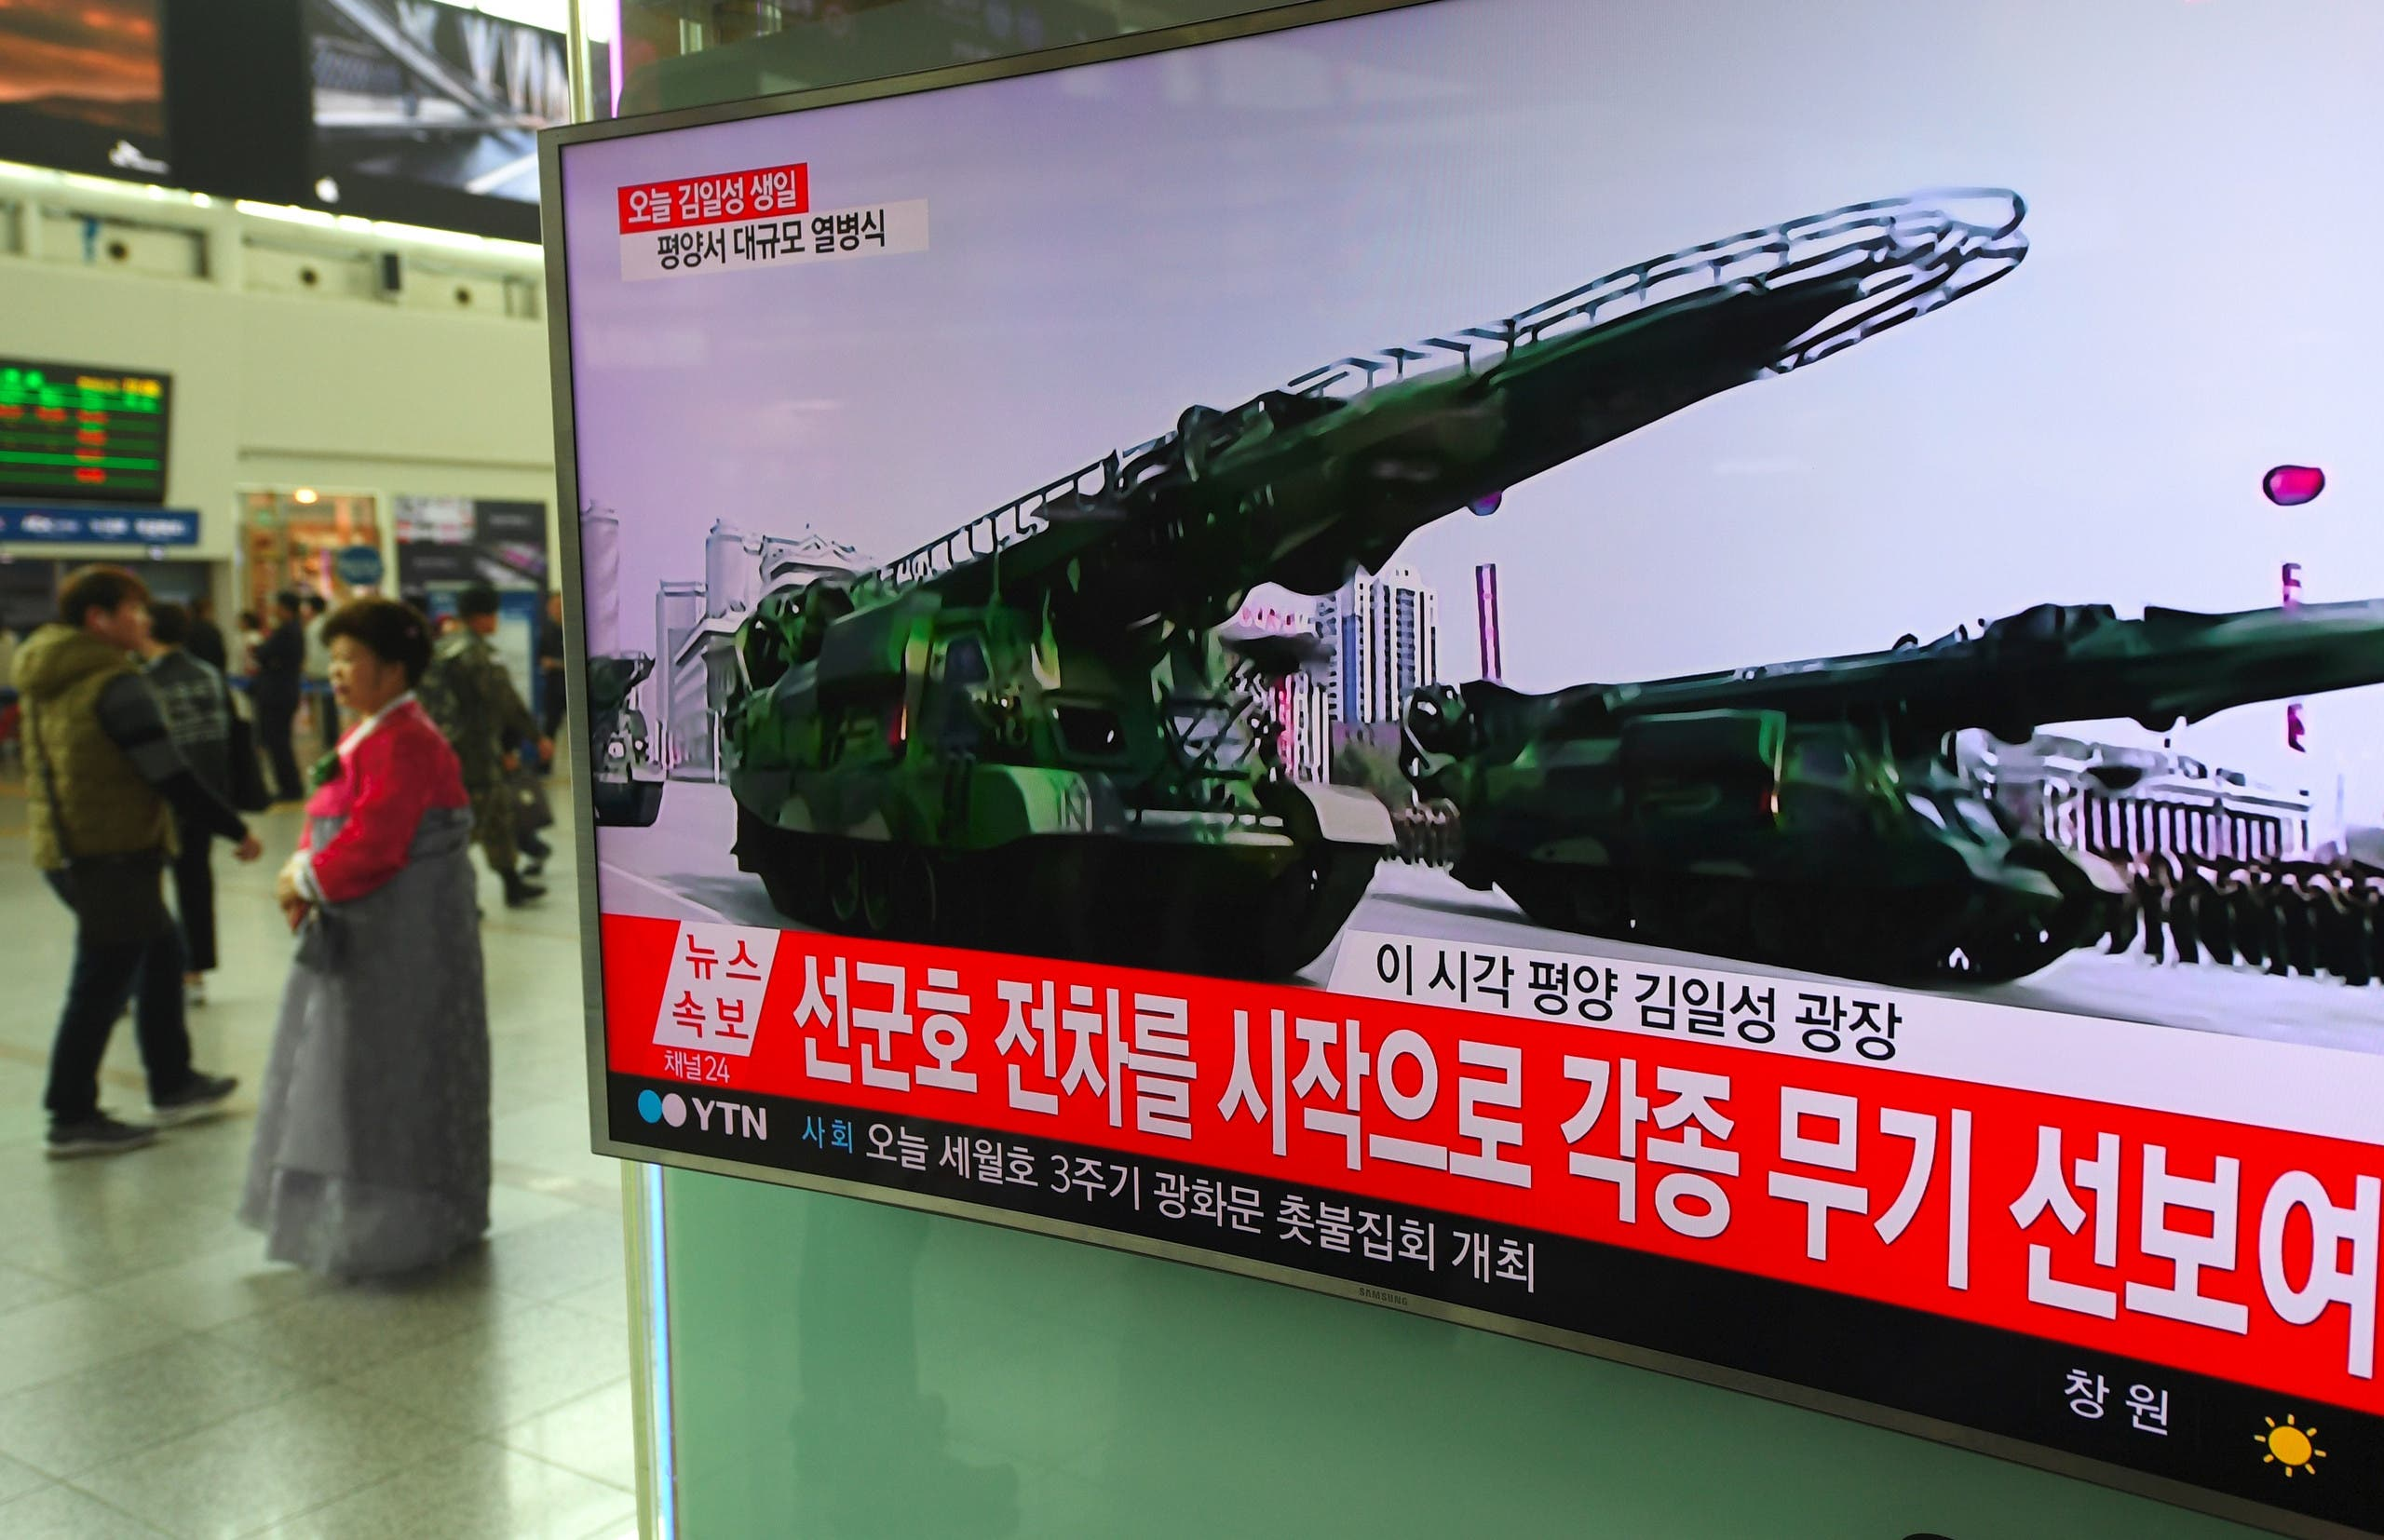 People watch a television news broadcasting live footage of a parade to mark the 105th anniversary of the birth of North Korea's founder Kim Il-Sung, at a railway station in Seoul on April 15, 2017.